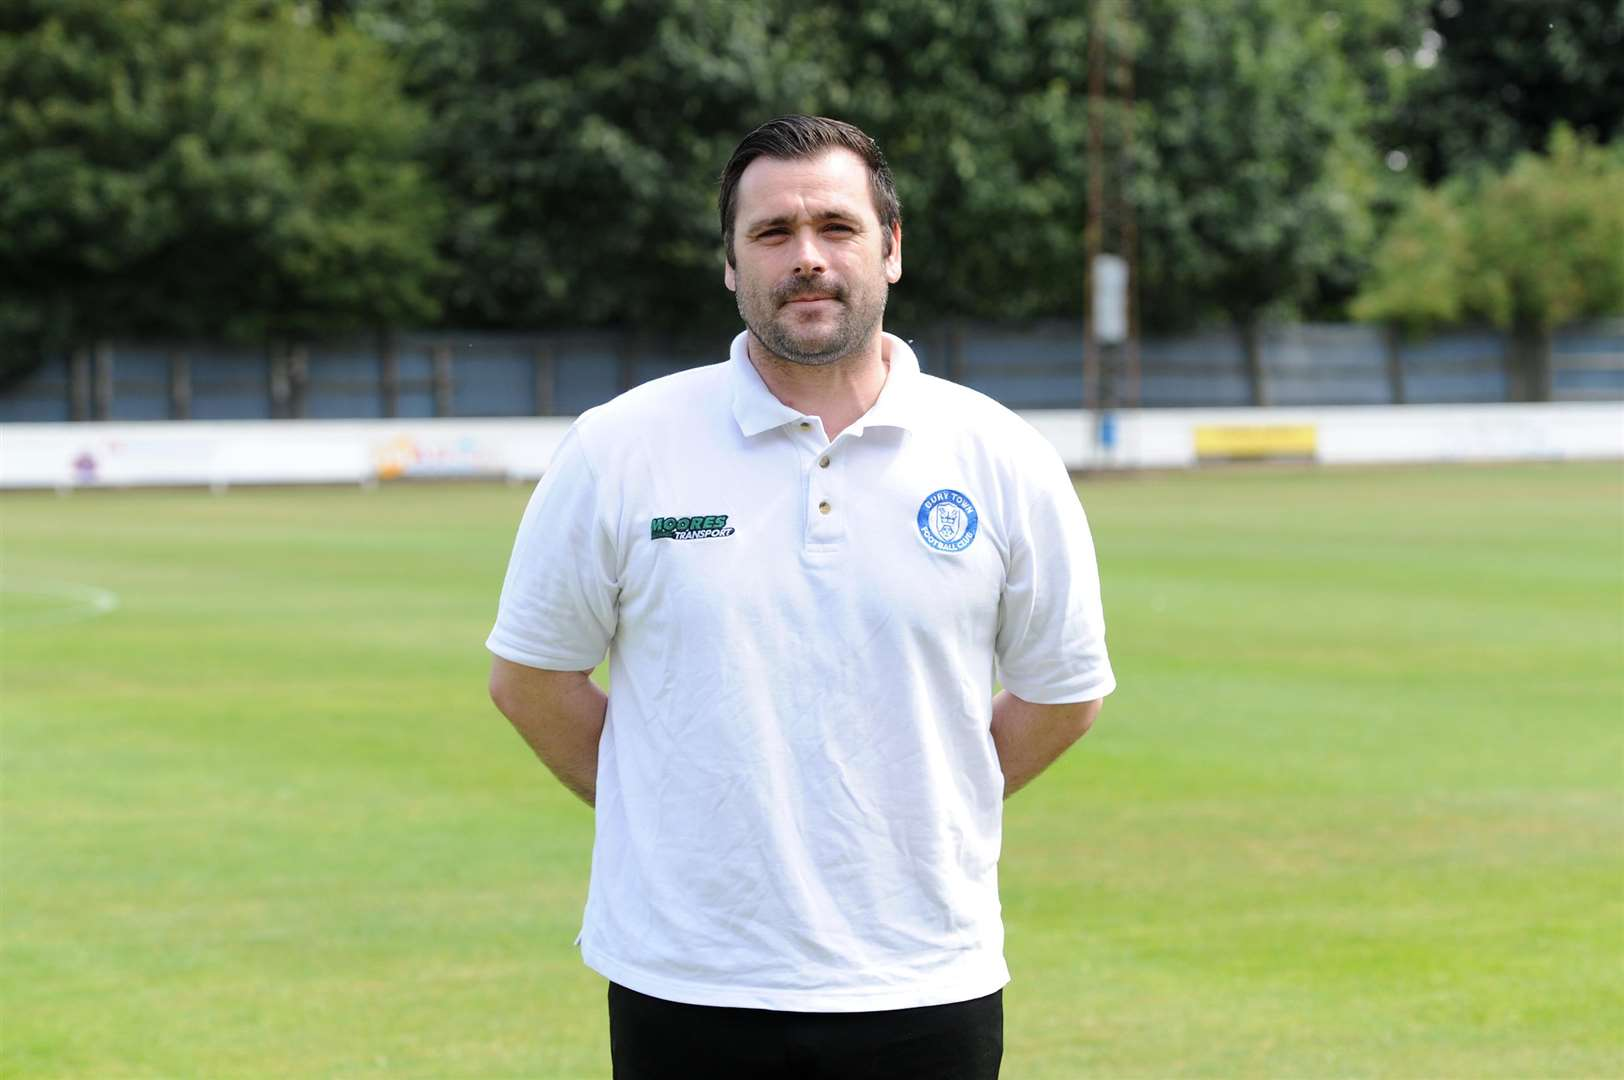 BURY TOWN FC profile shots..Pictured: Christian Appleford - Assistant Manager. (5769917)